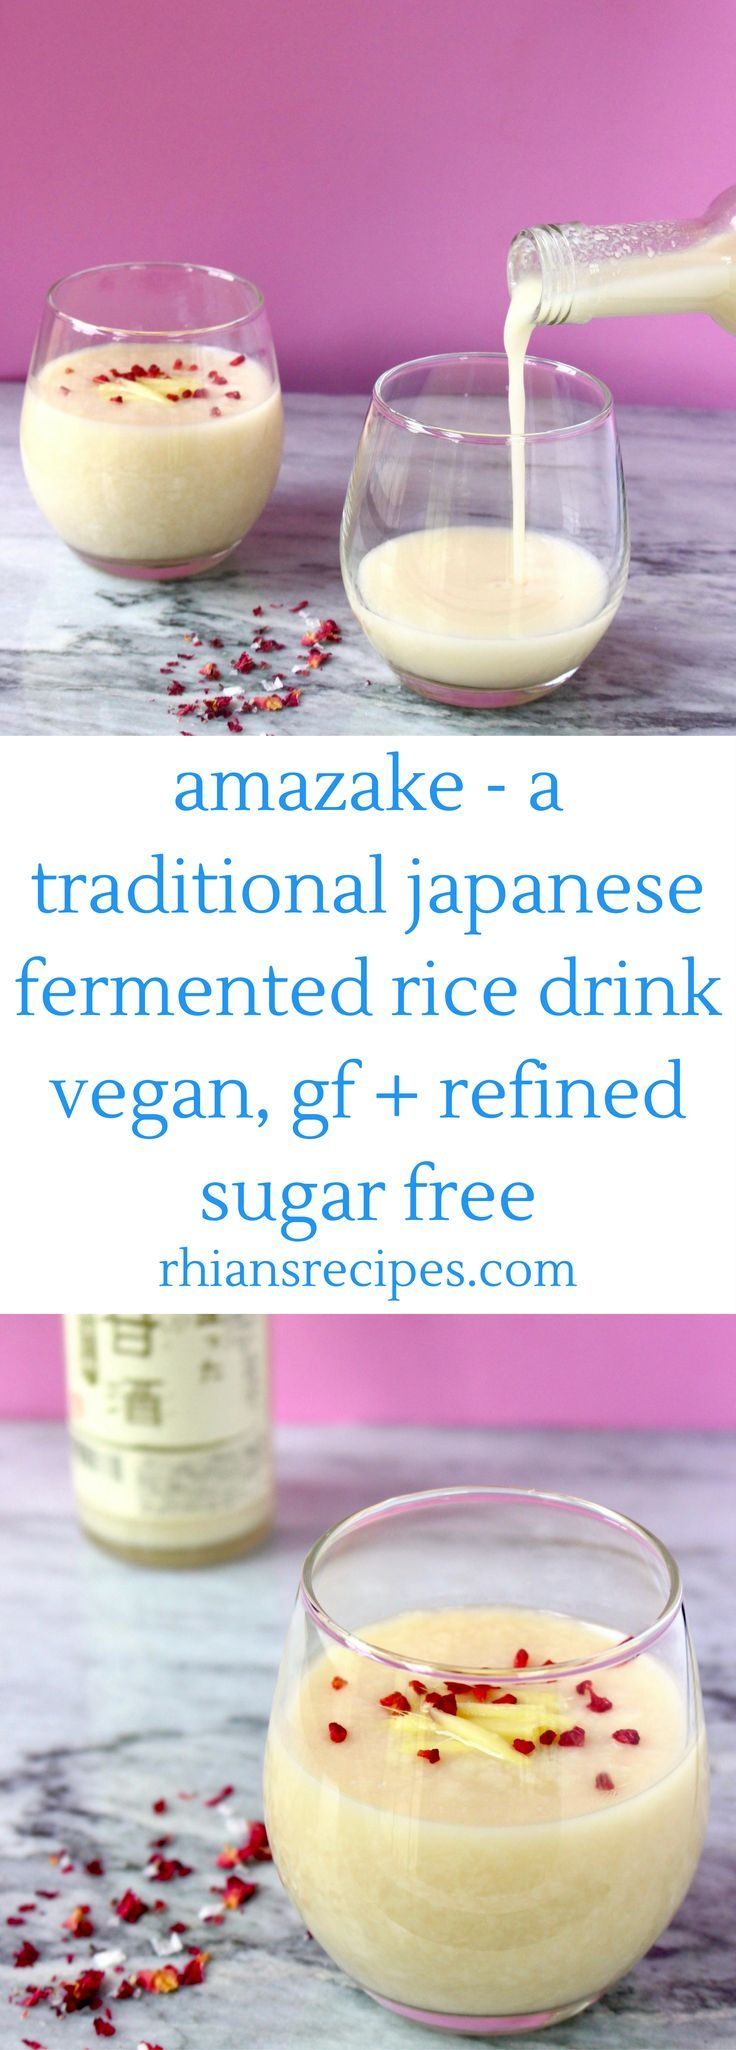 Amazake is a traditional Japanese fermented rice drink. It's vegan, gluten-free, naturally sweet, super healthy and so delicious!